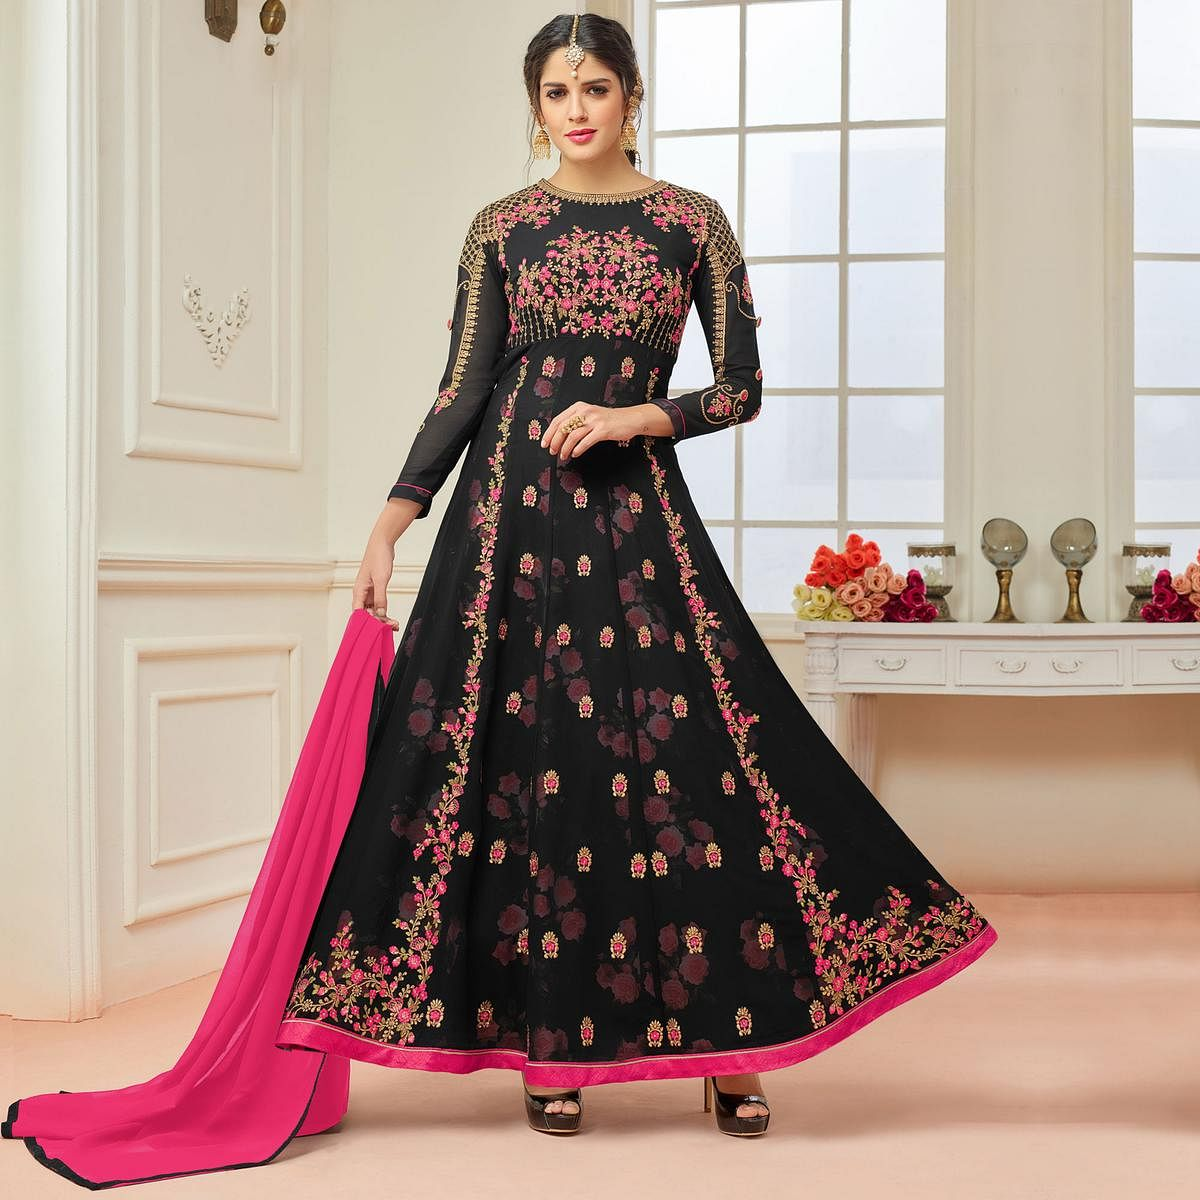 d8e3c6b9ad Buy Gorgeous Black Designer Embroidered Partywear Faux Georgette Anarkali  Suit online India, Best Prices, Reviews - Peachmode